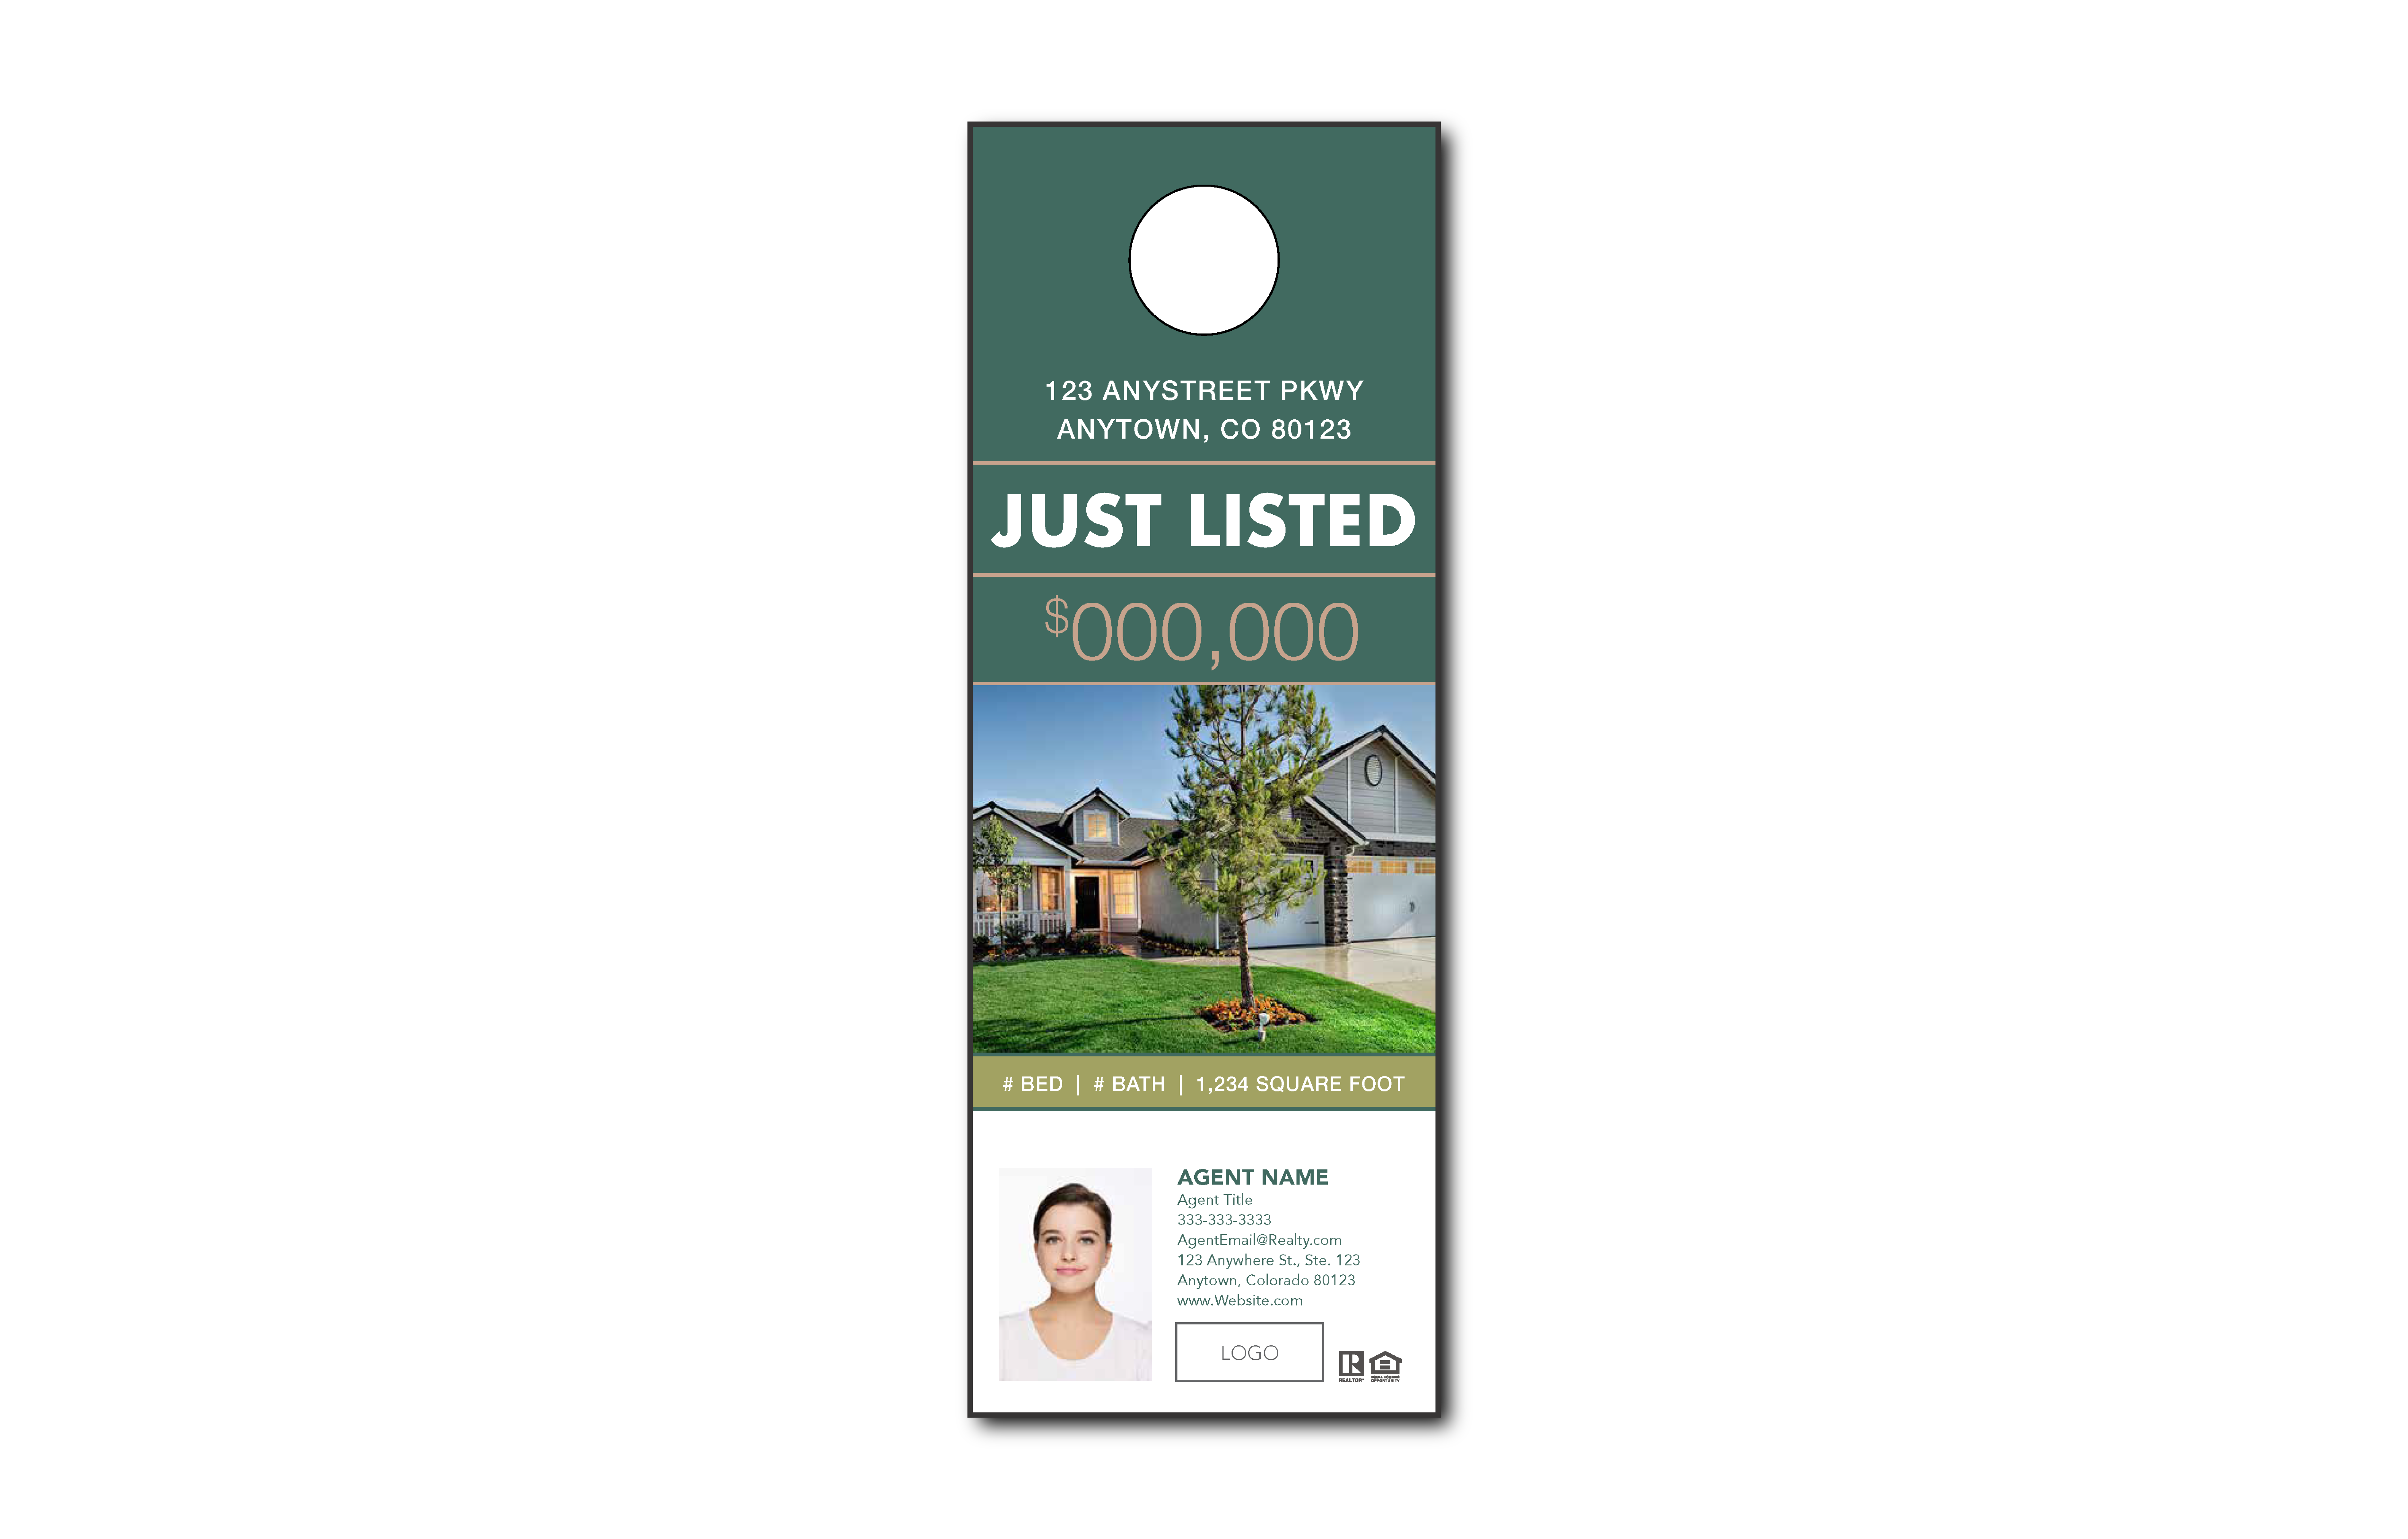 Plumb Marketing Doorhanger 10 One Sided Green - 1709